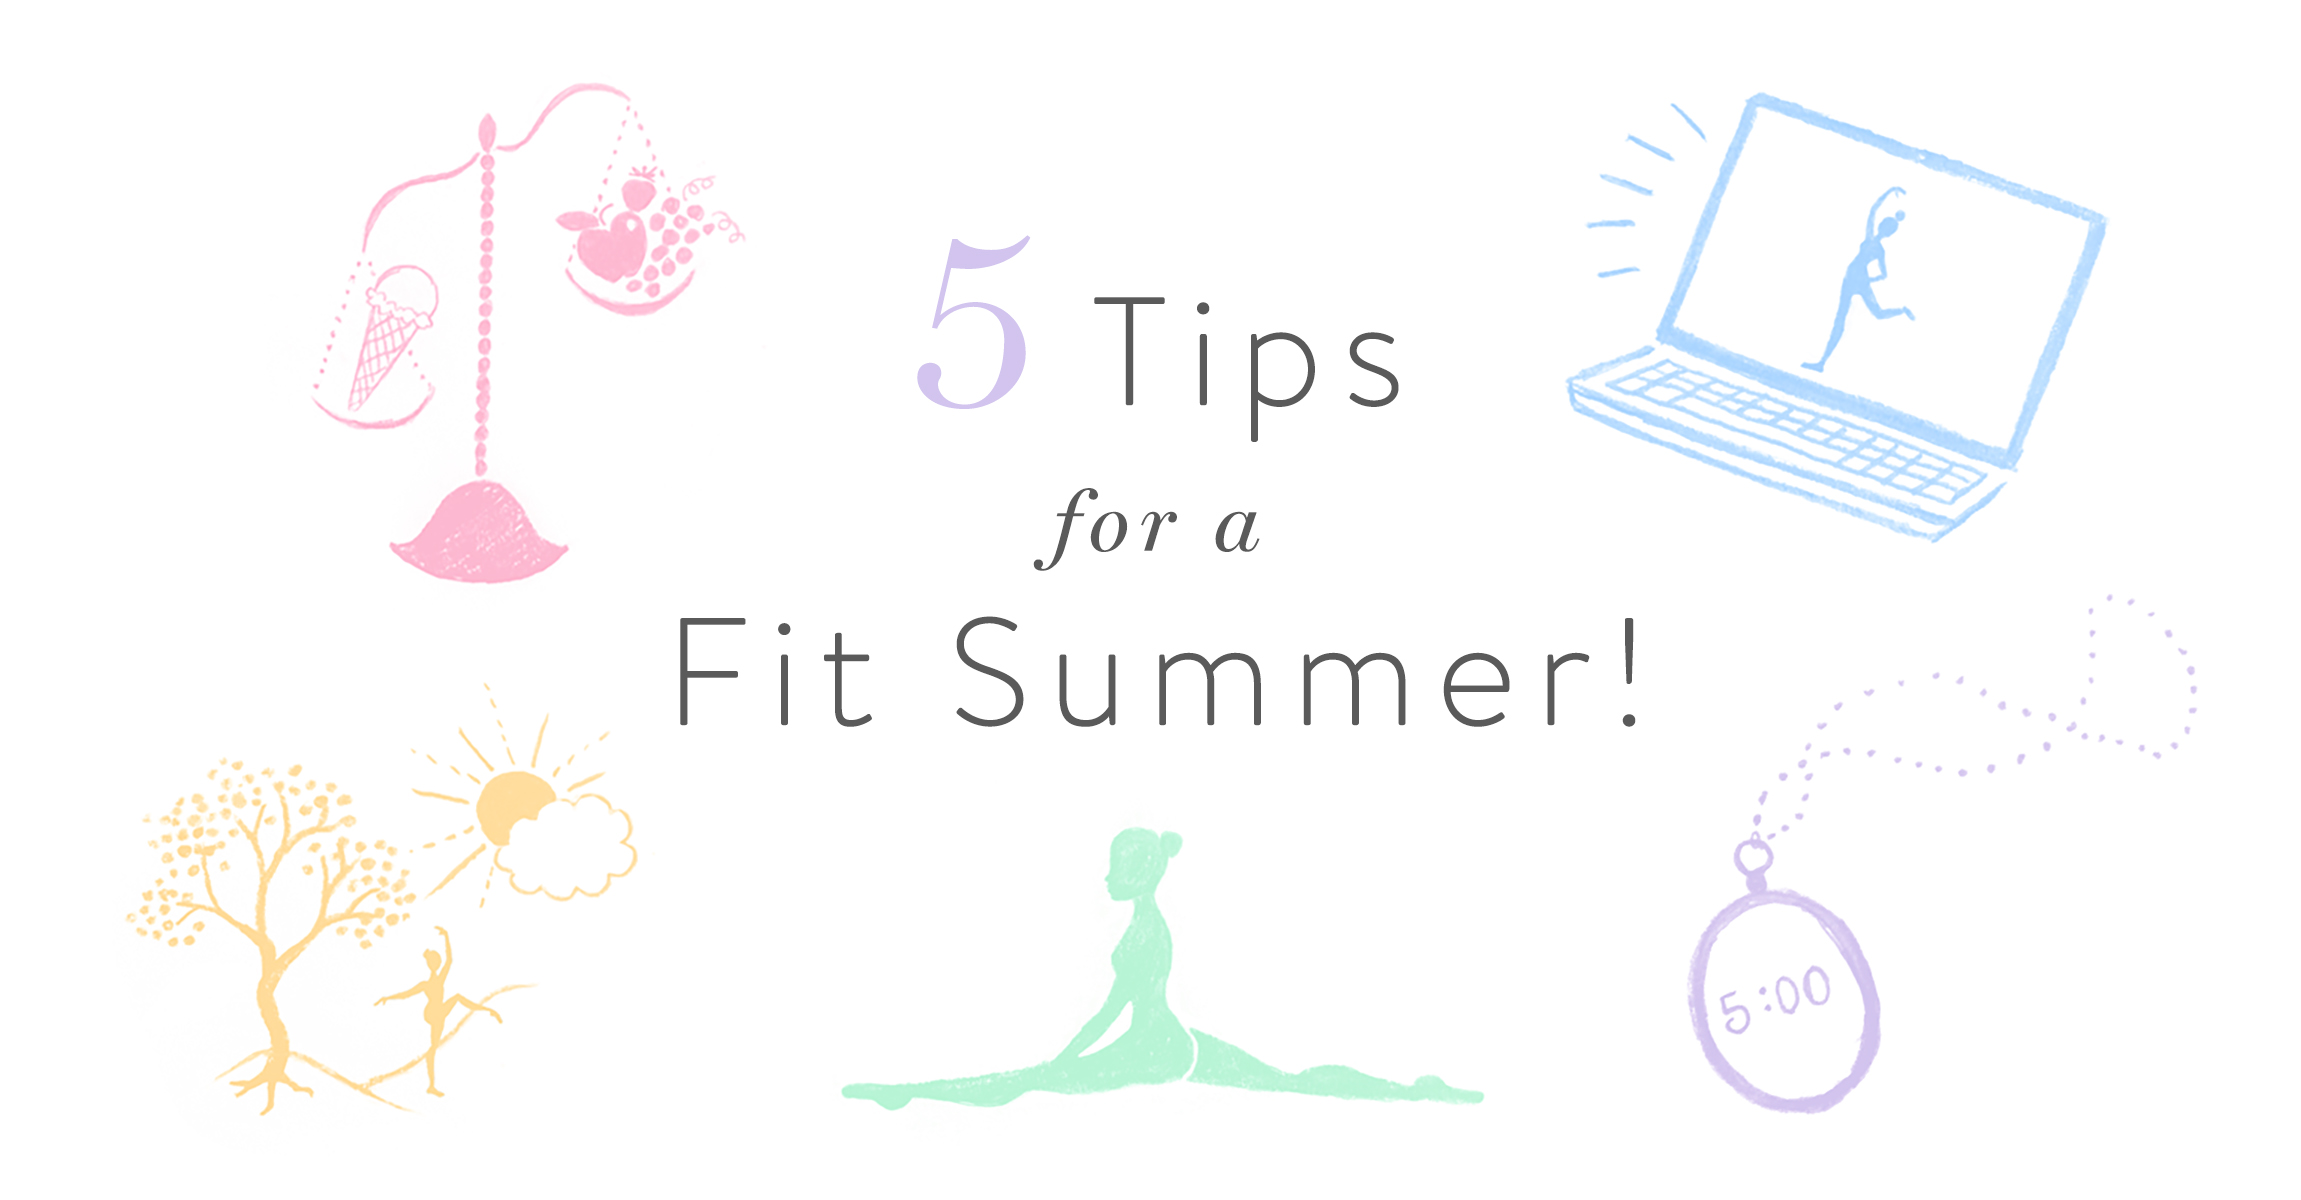 5 Tips for a Fit Summer!